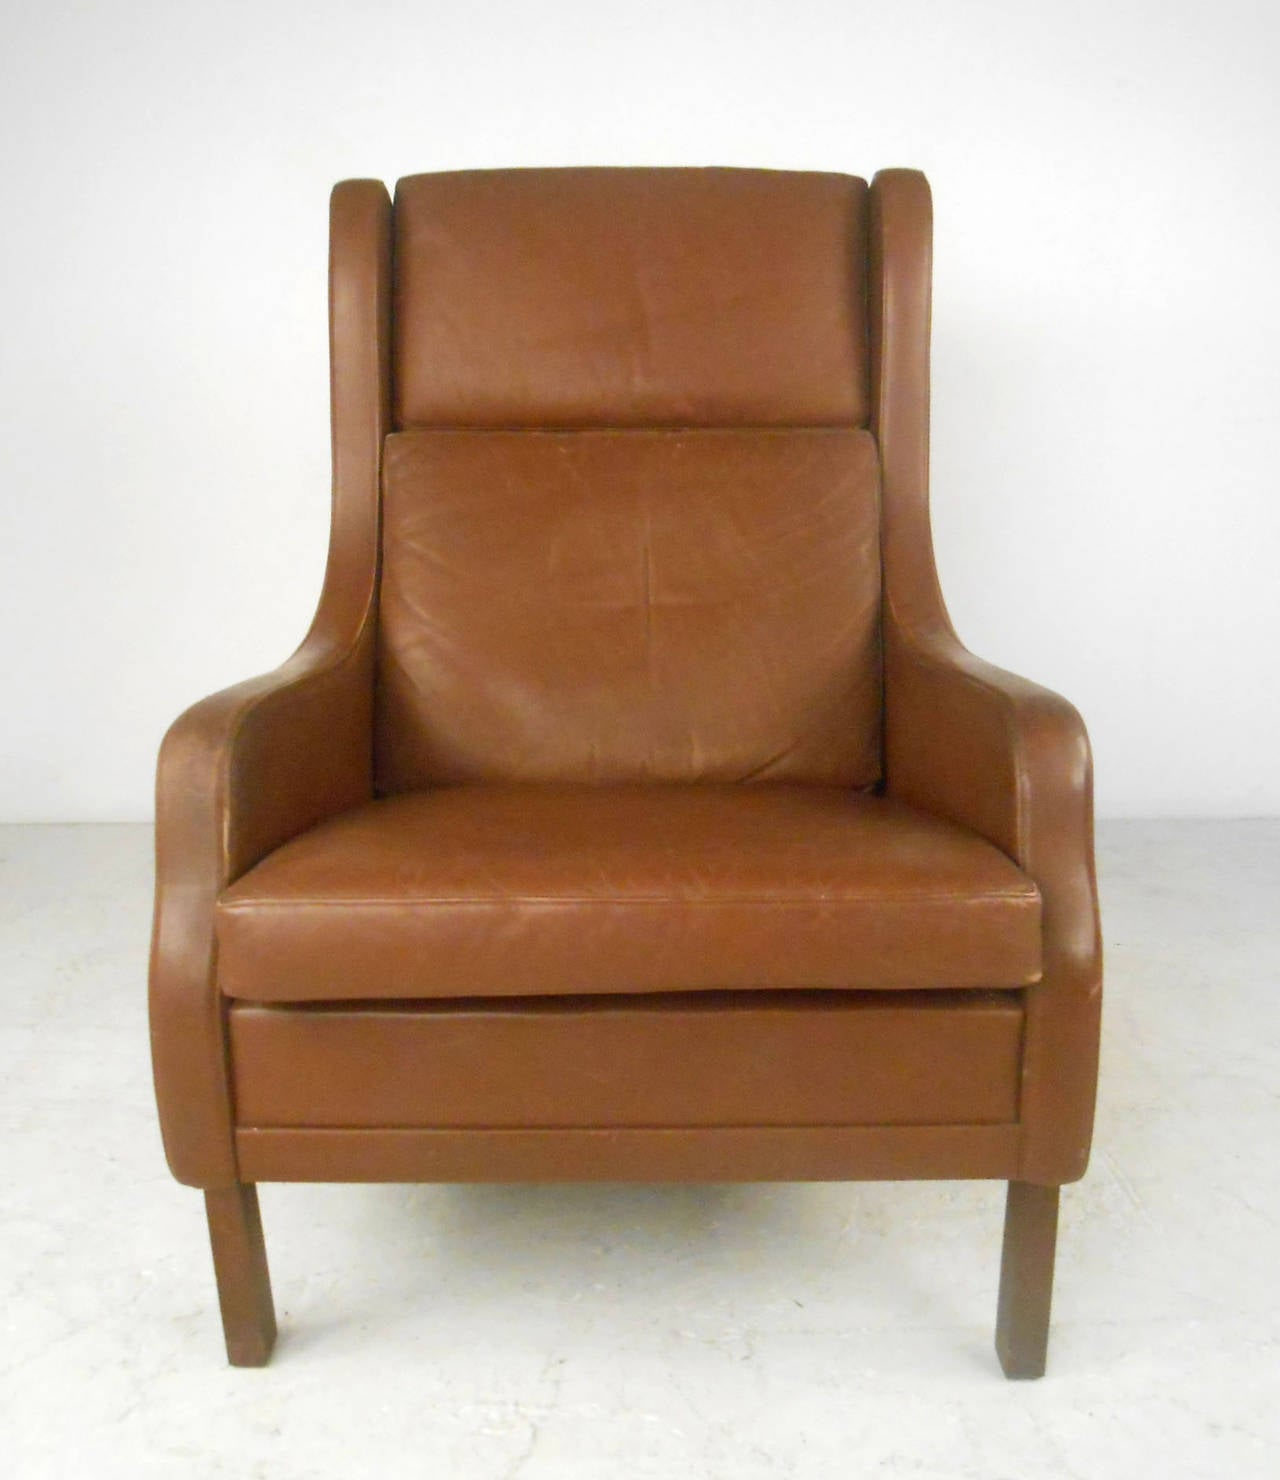 Unique Mid-Century Modern Vintage Leather Danish Lounge Chair In Good Condition For Sale In Brooklyn, NY